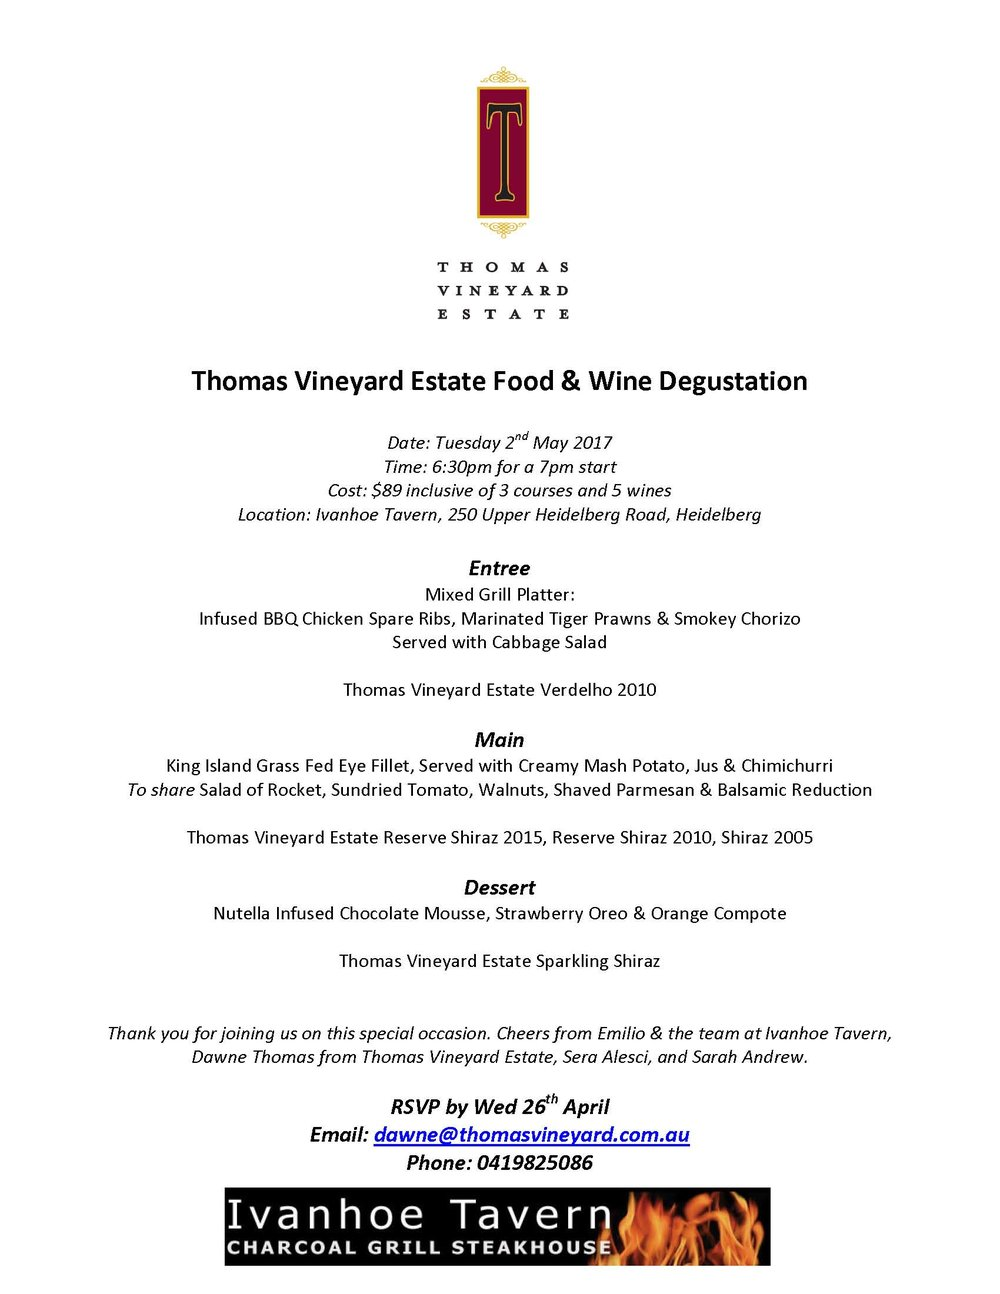 Thomas Vineyard Estate Food & Wine Degustation